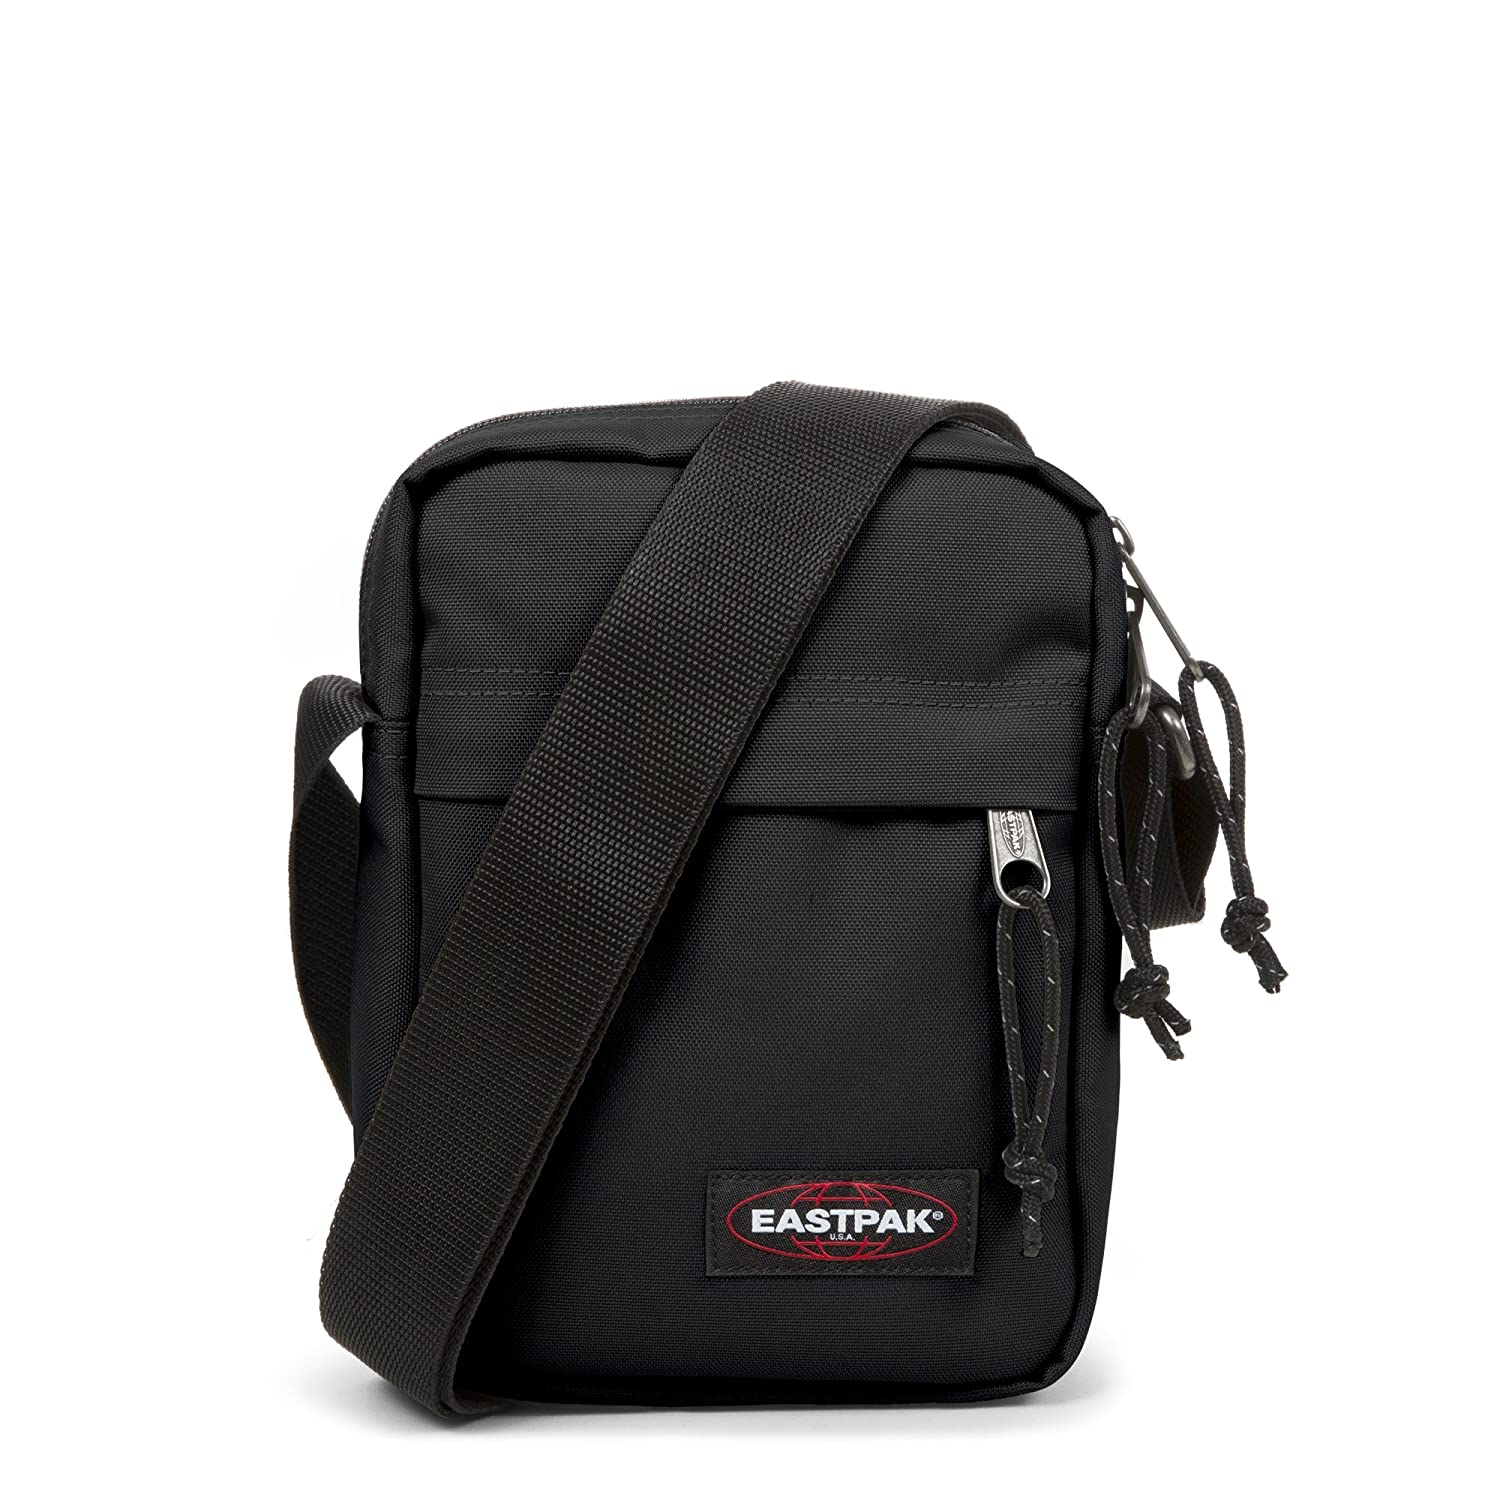 eastpak the one shoulder bag 2 5 l black luggage